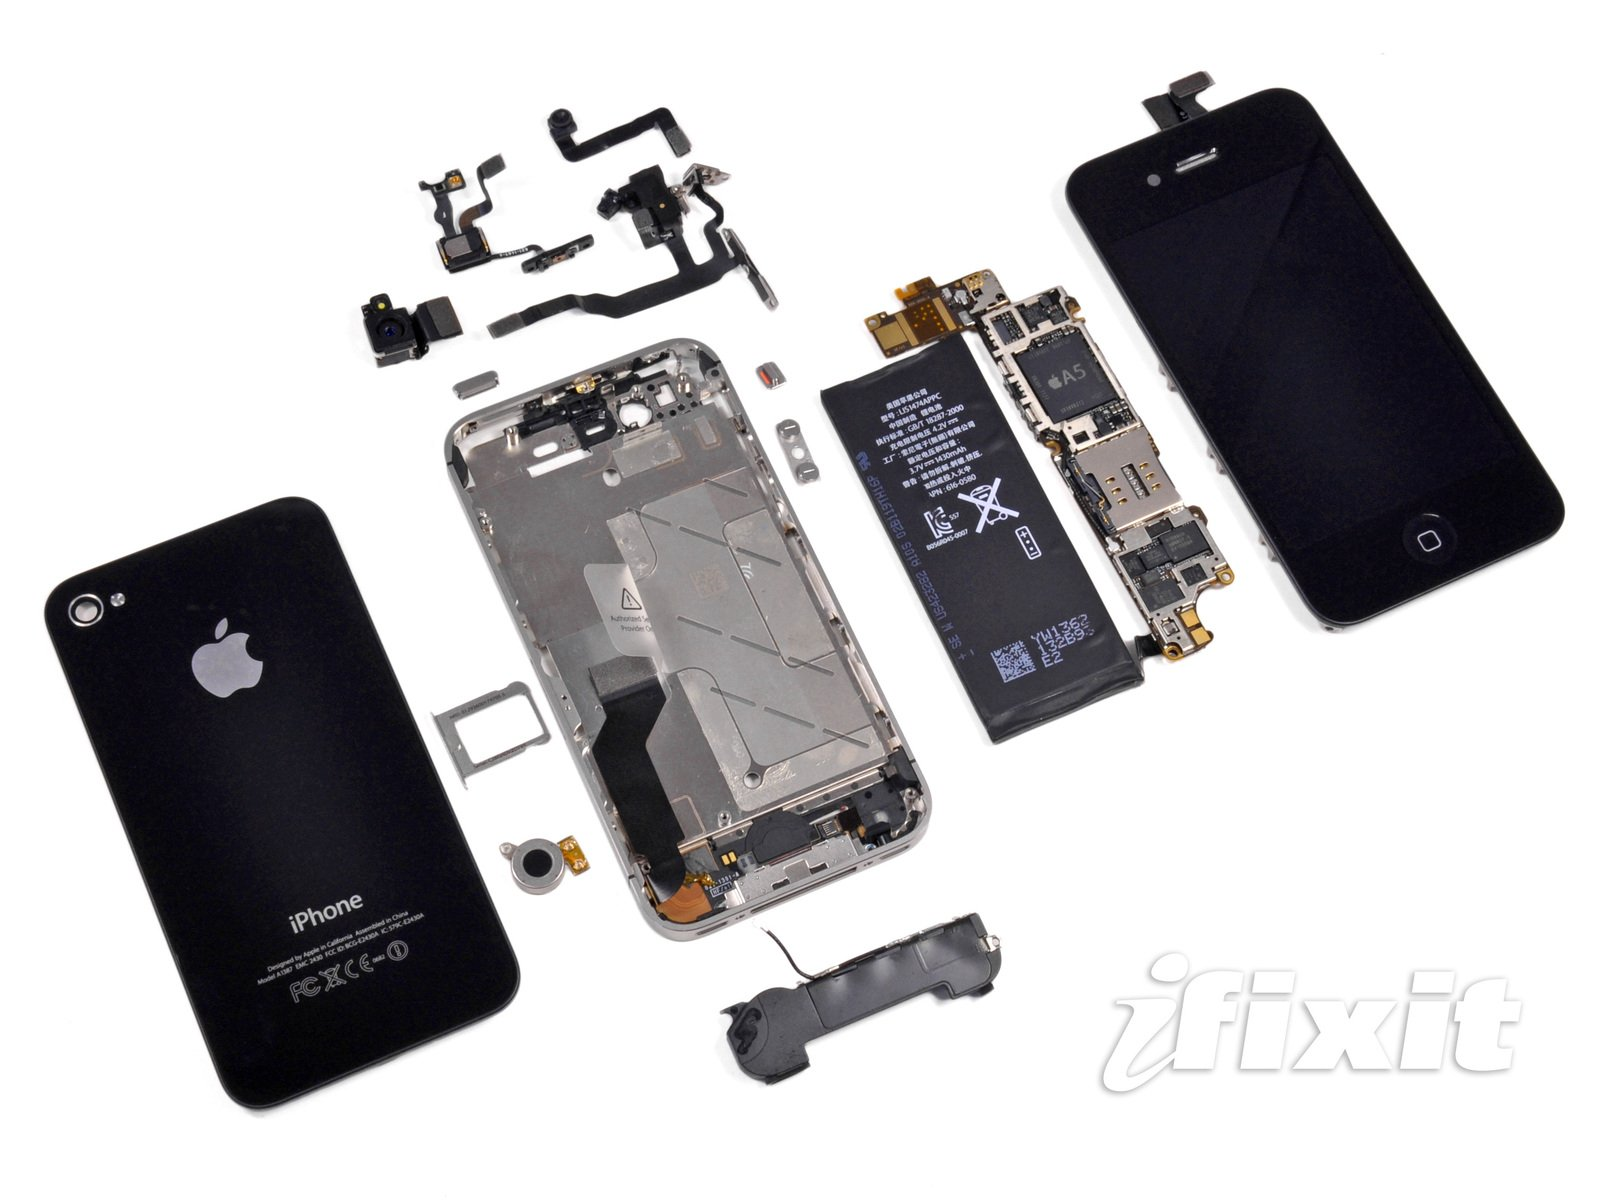 iphone 4 abonnement